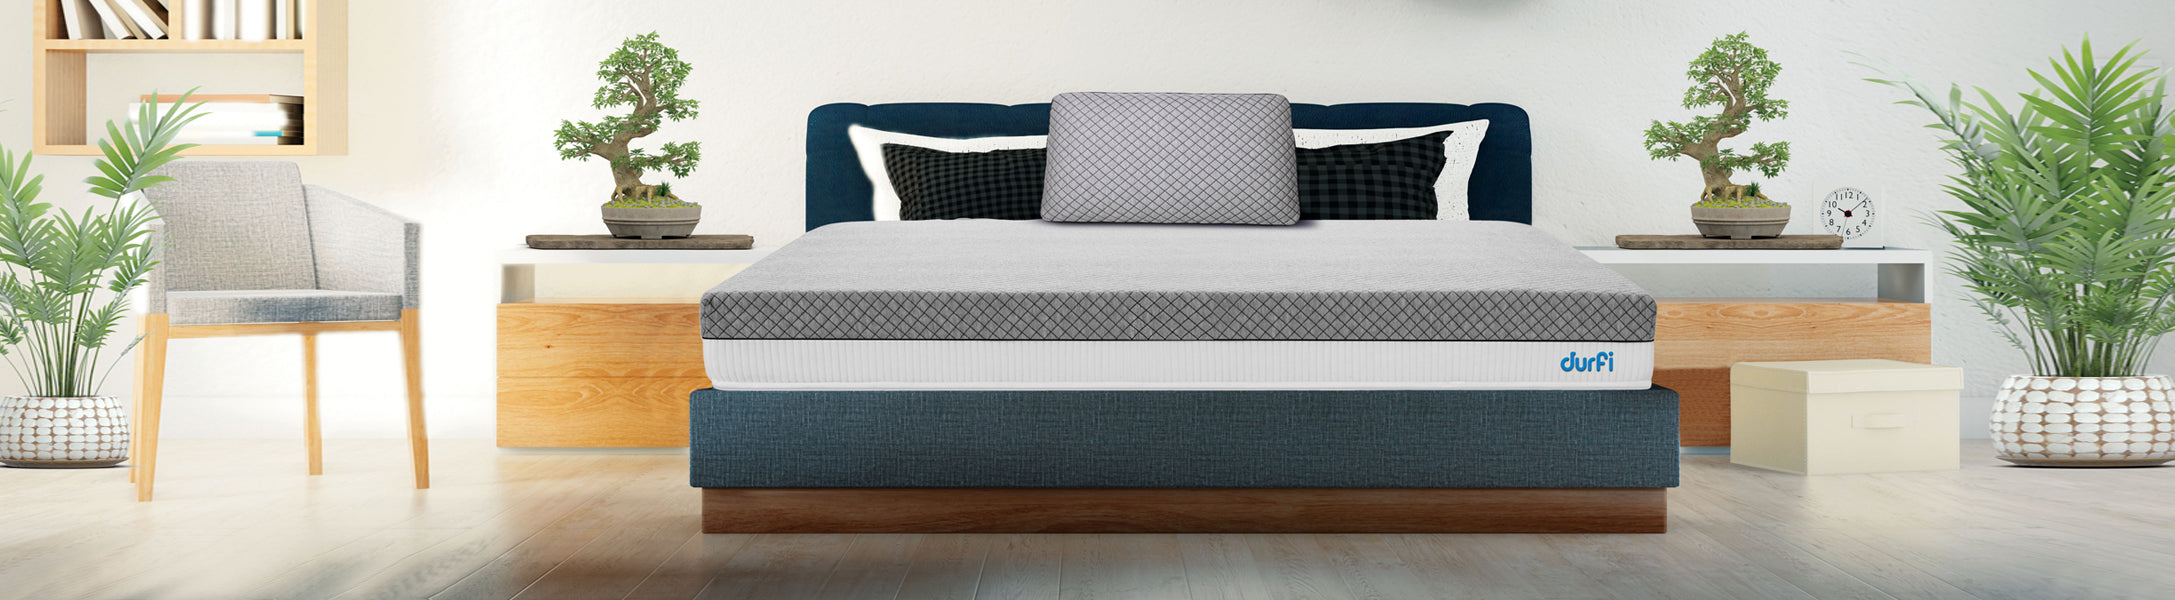 Durfi Mattress